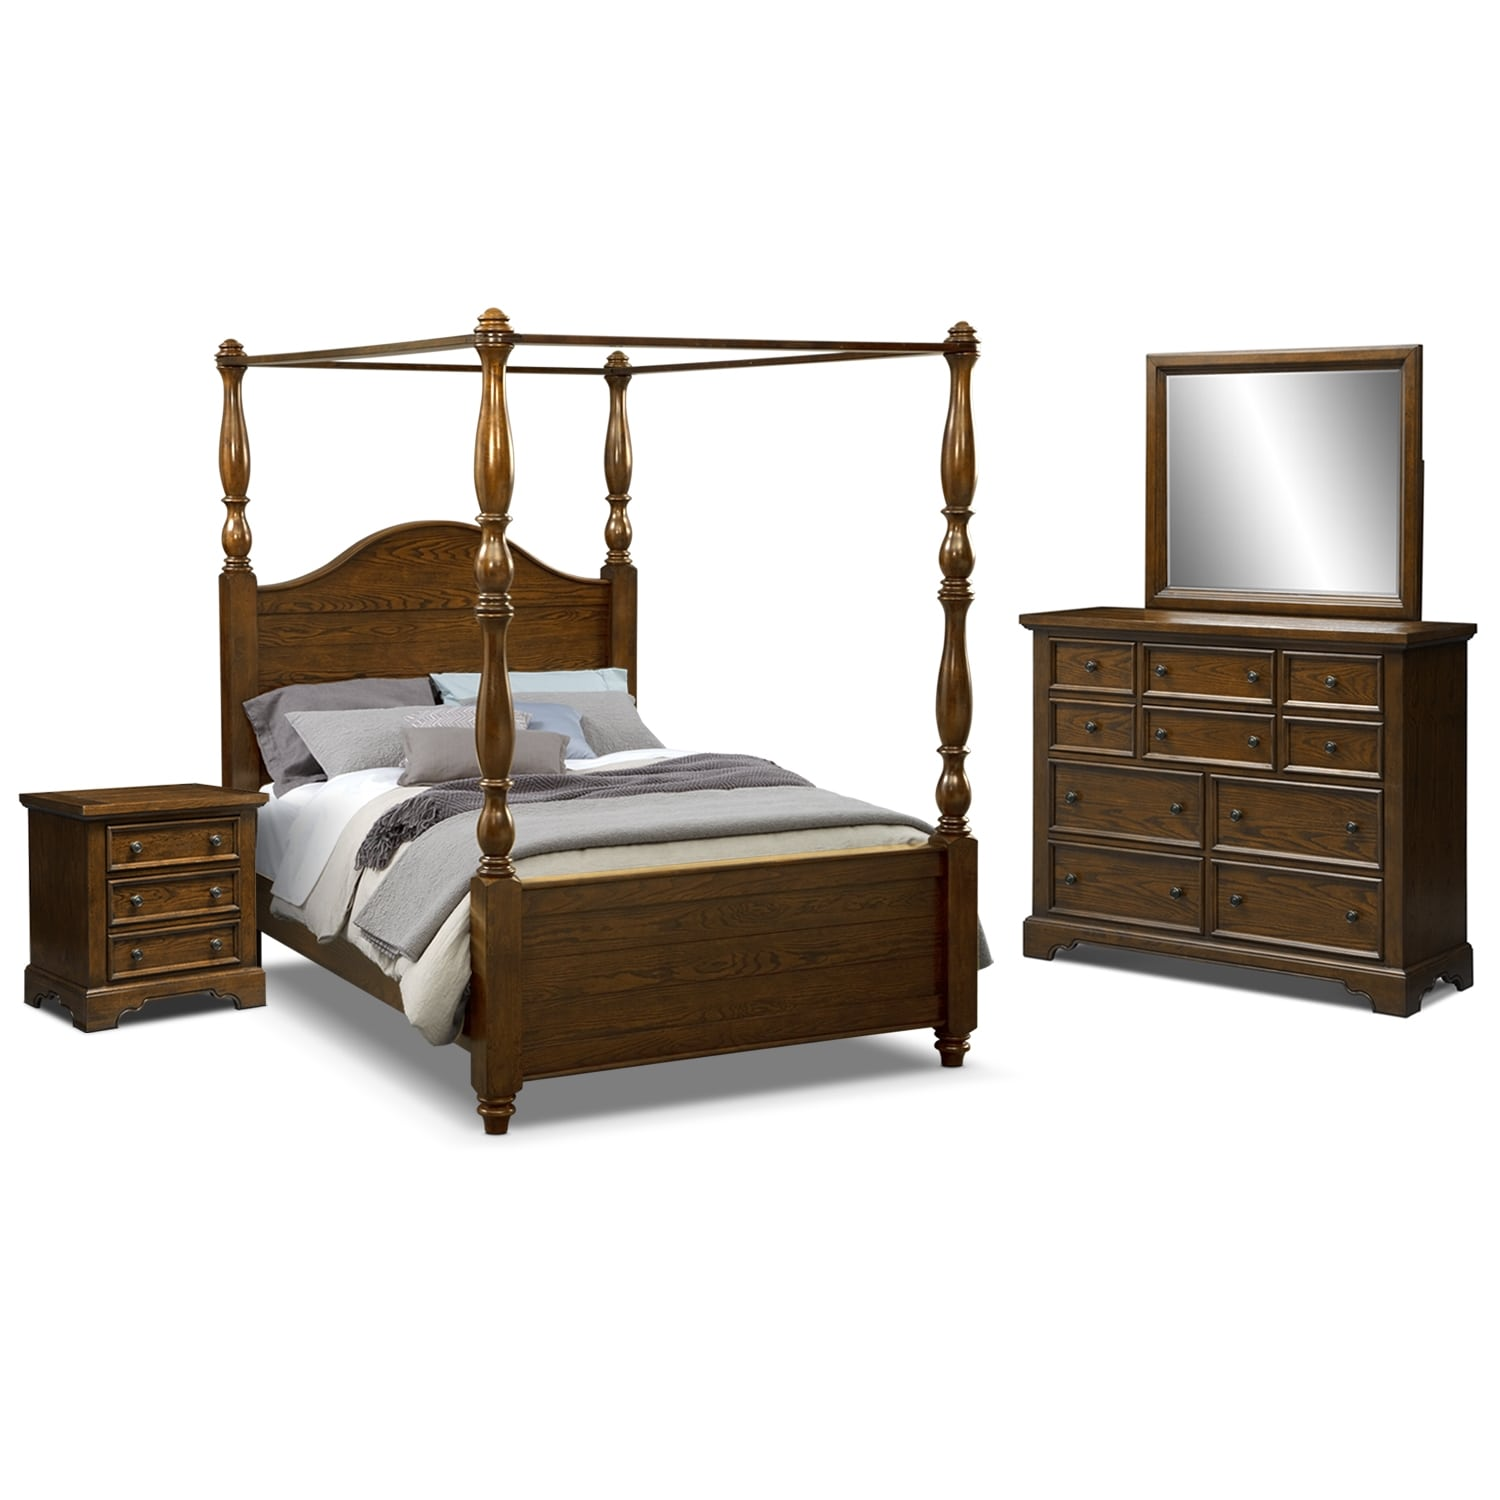 west indies collection bedroom furniture as well caribbean furniture